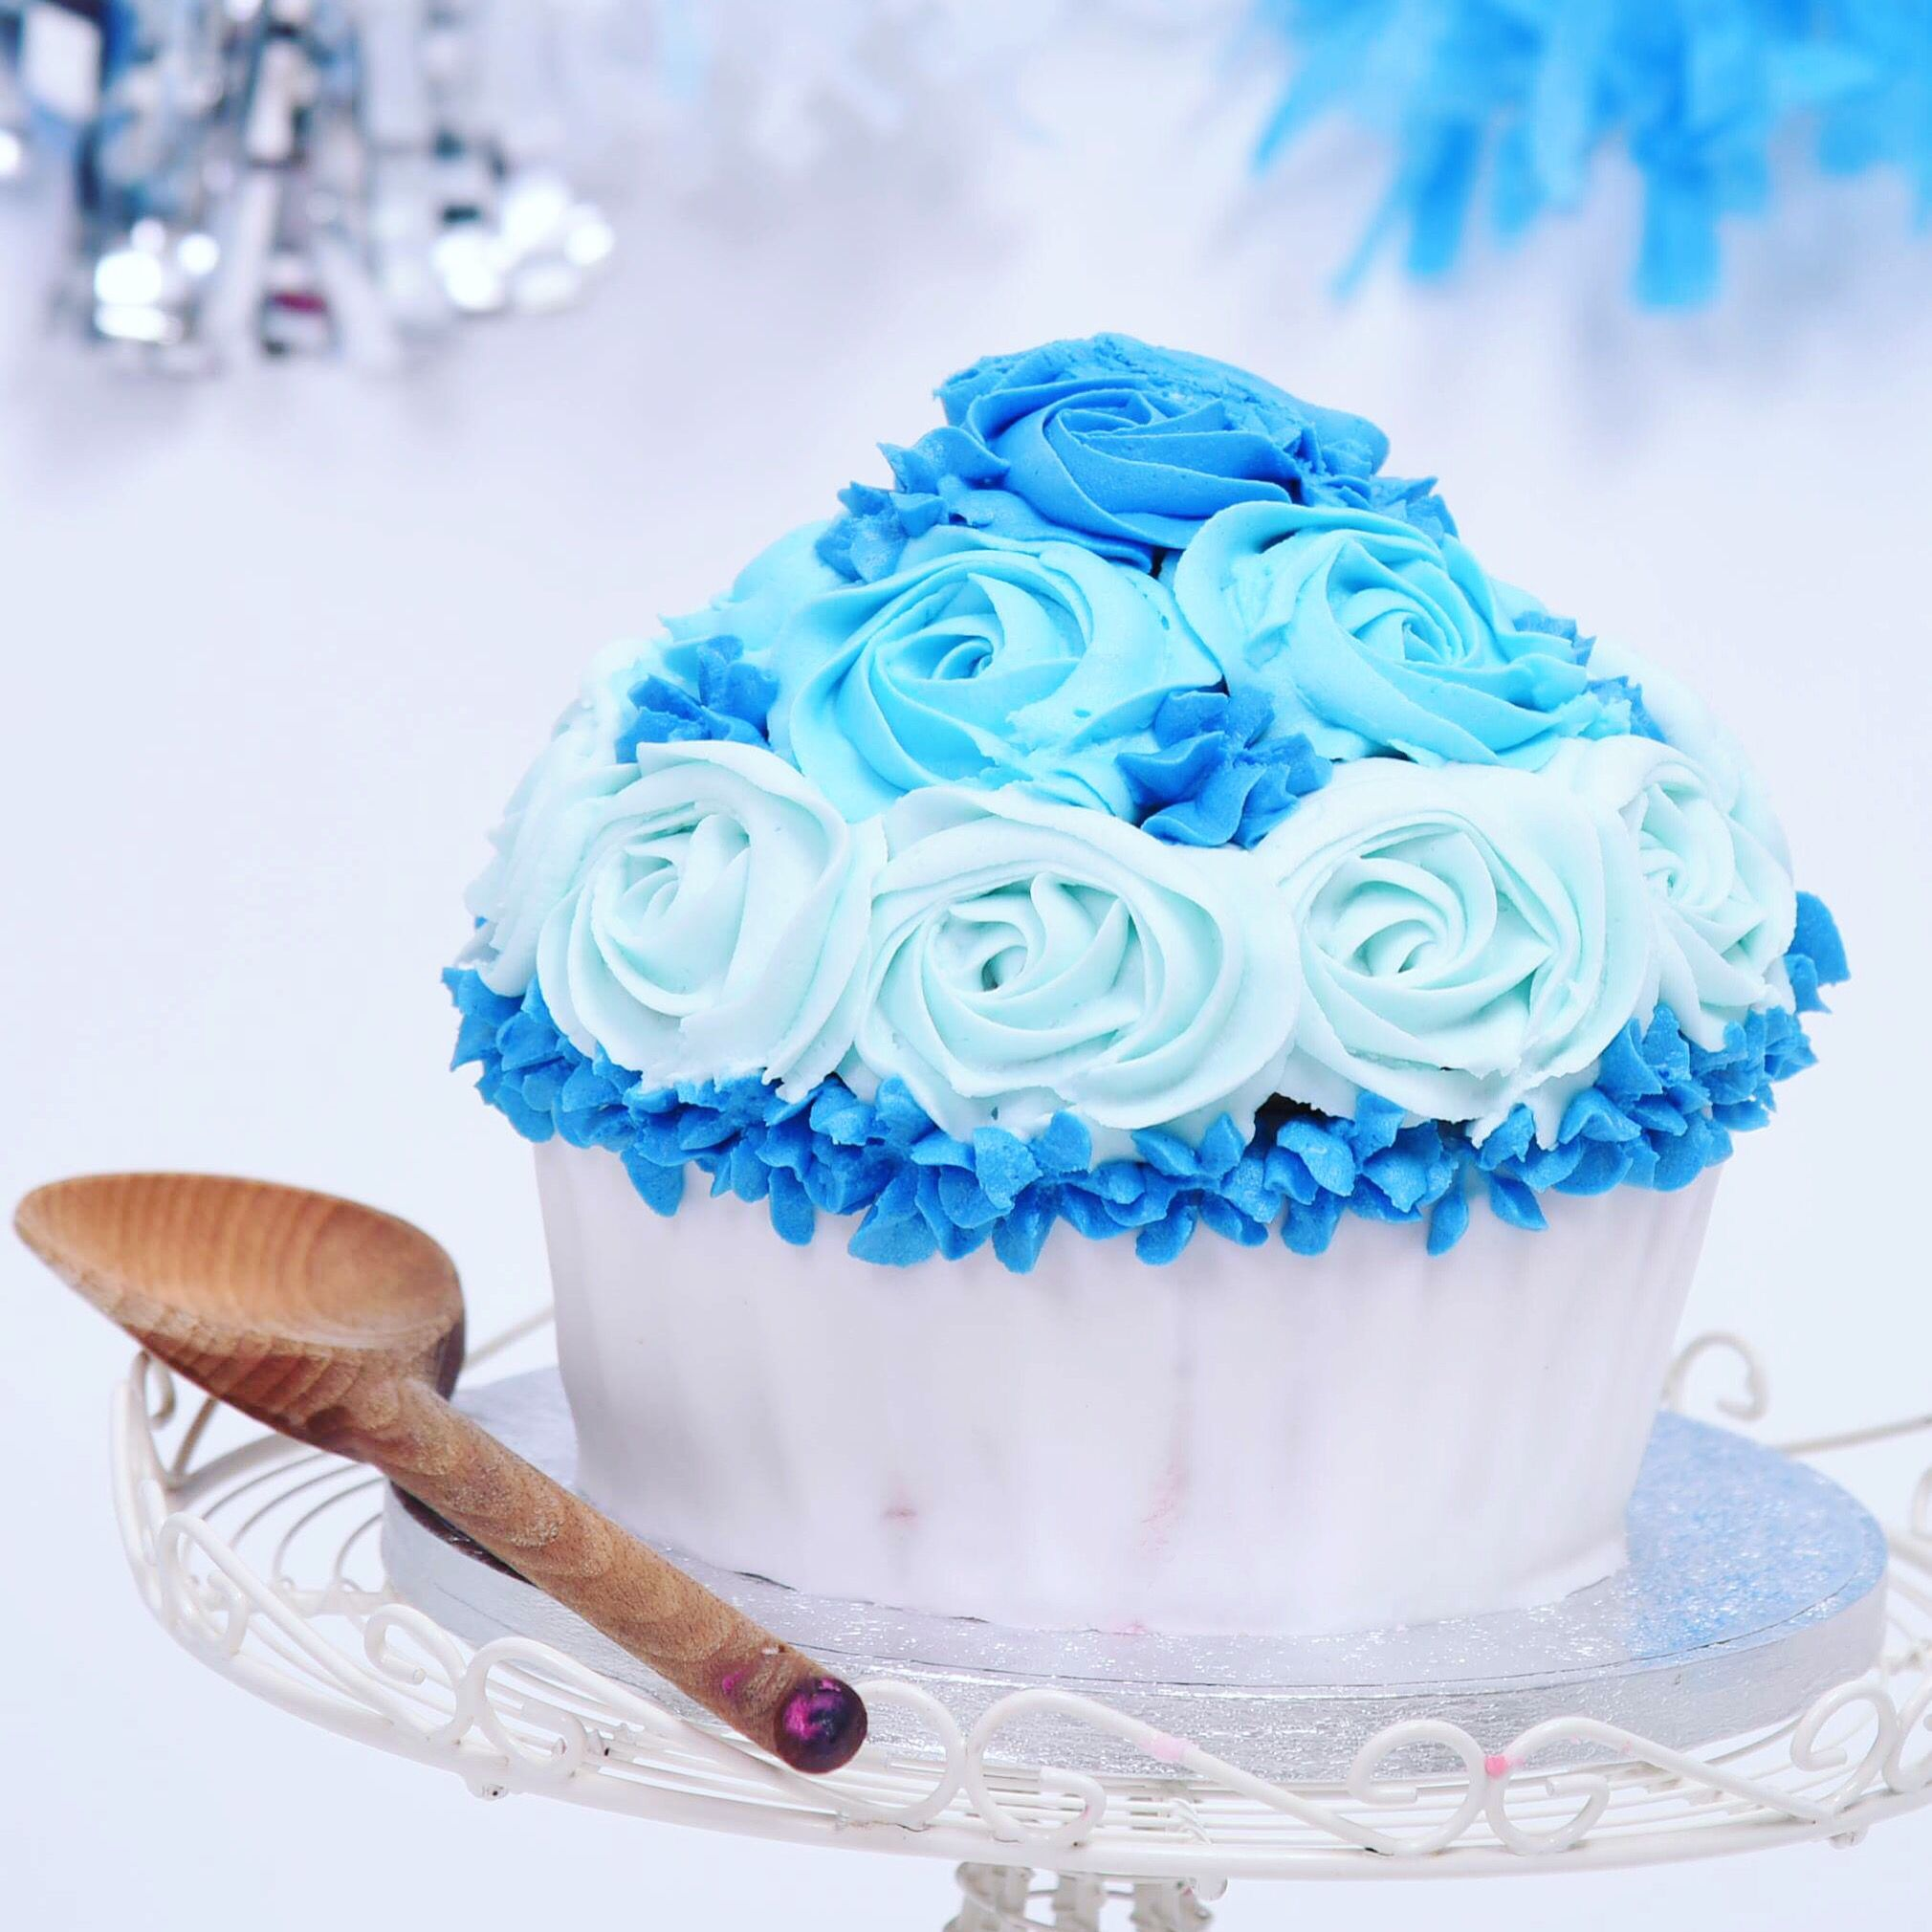 Another Cake Smash Giant Cupcake For A Boys 1st Birthday Blue